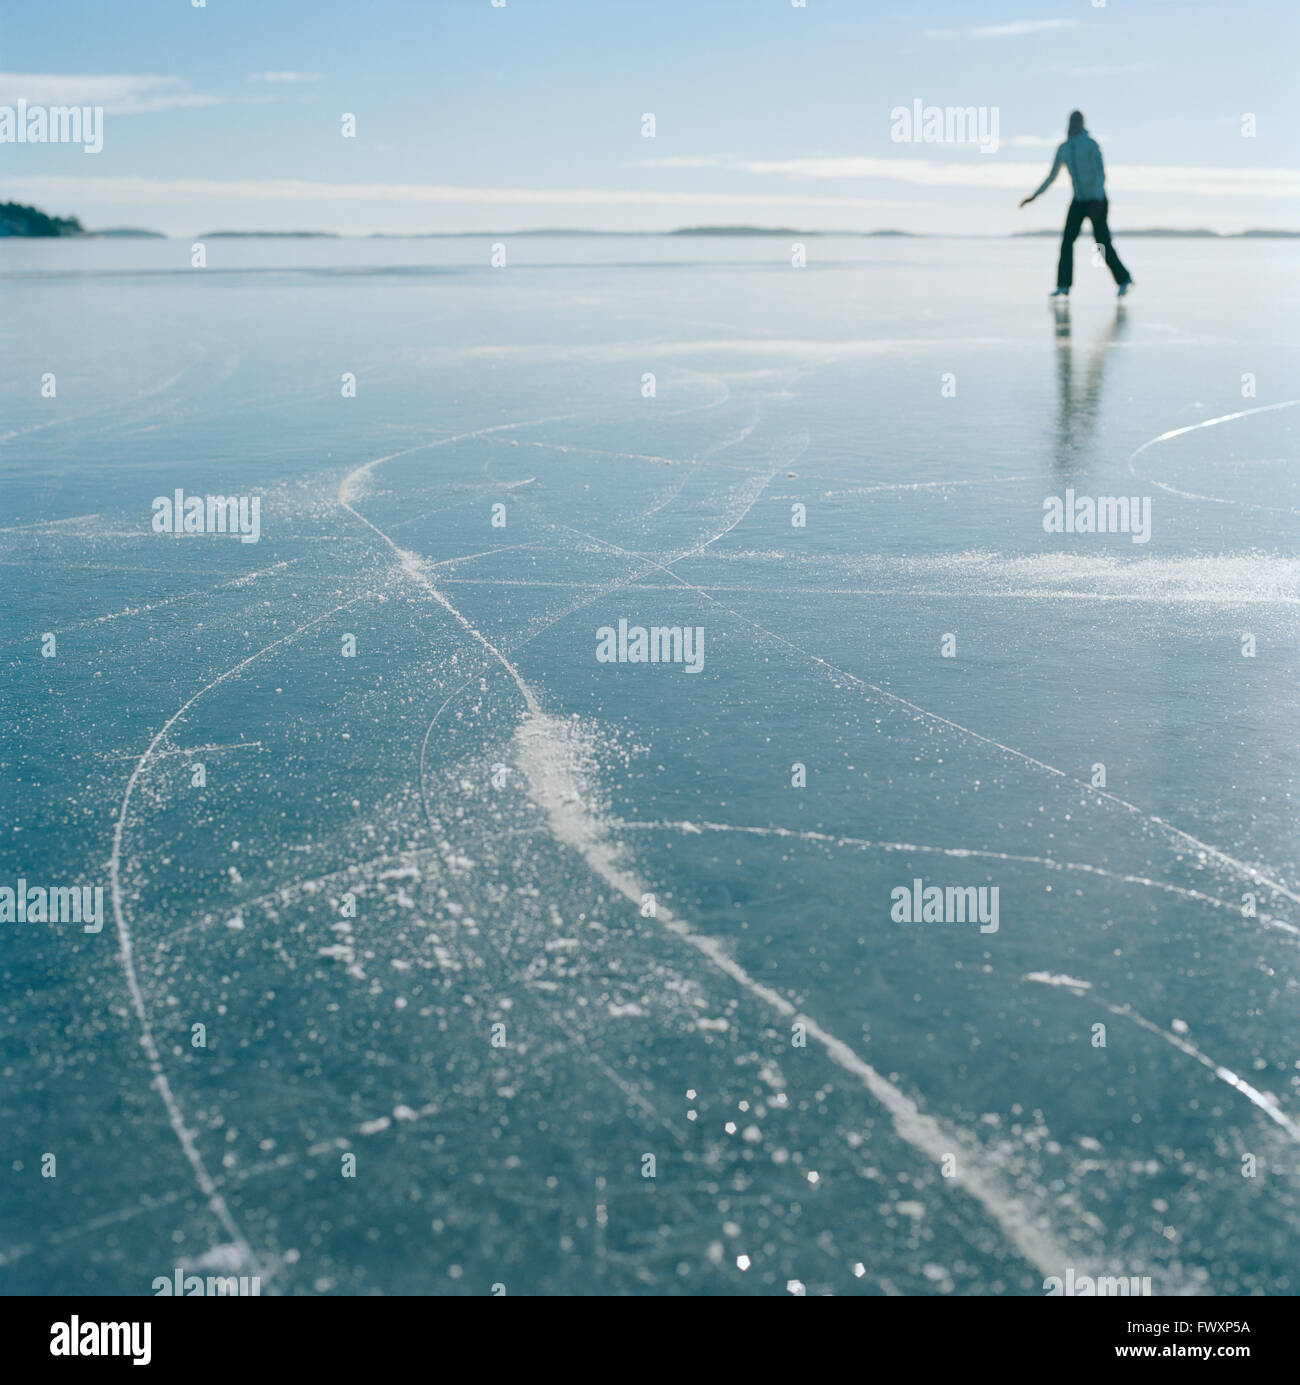 Sweden, Stockholm Archipelago, Uppland, Varmdo, Bjorno, Mid adult woman ice skating on frozen lake - Stock Image